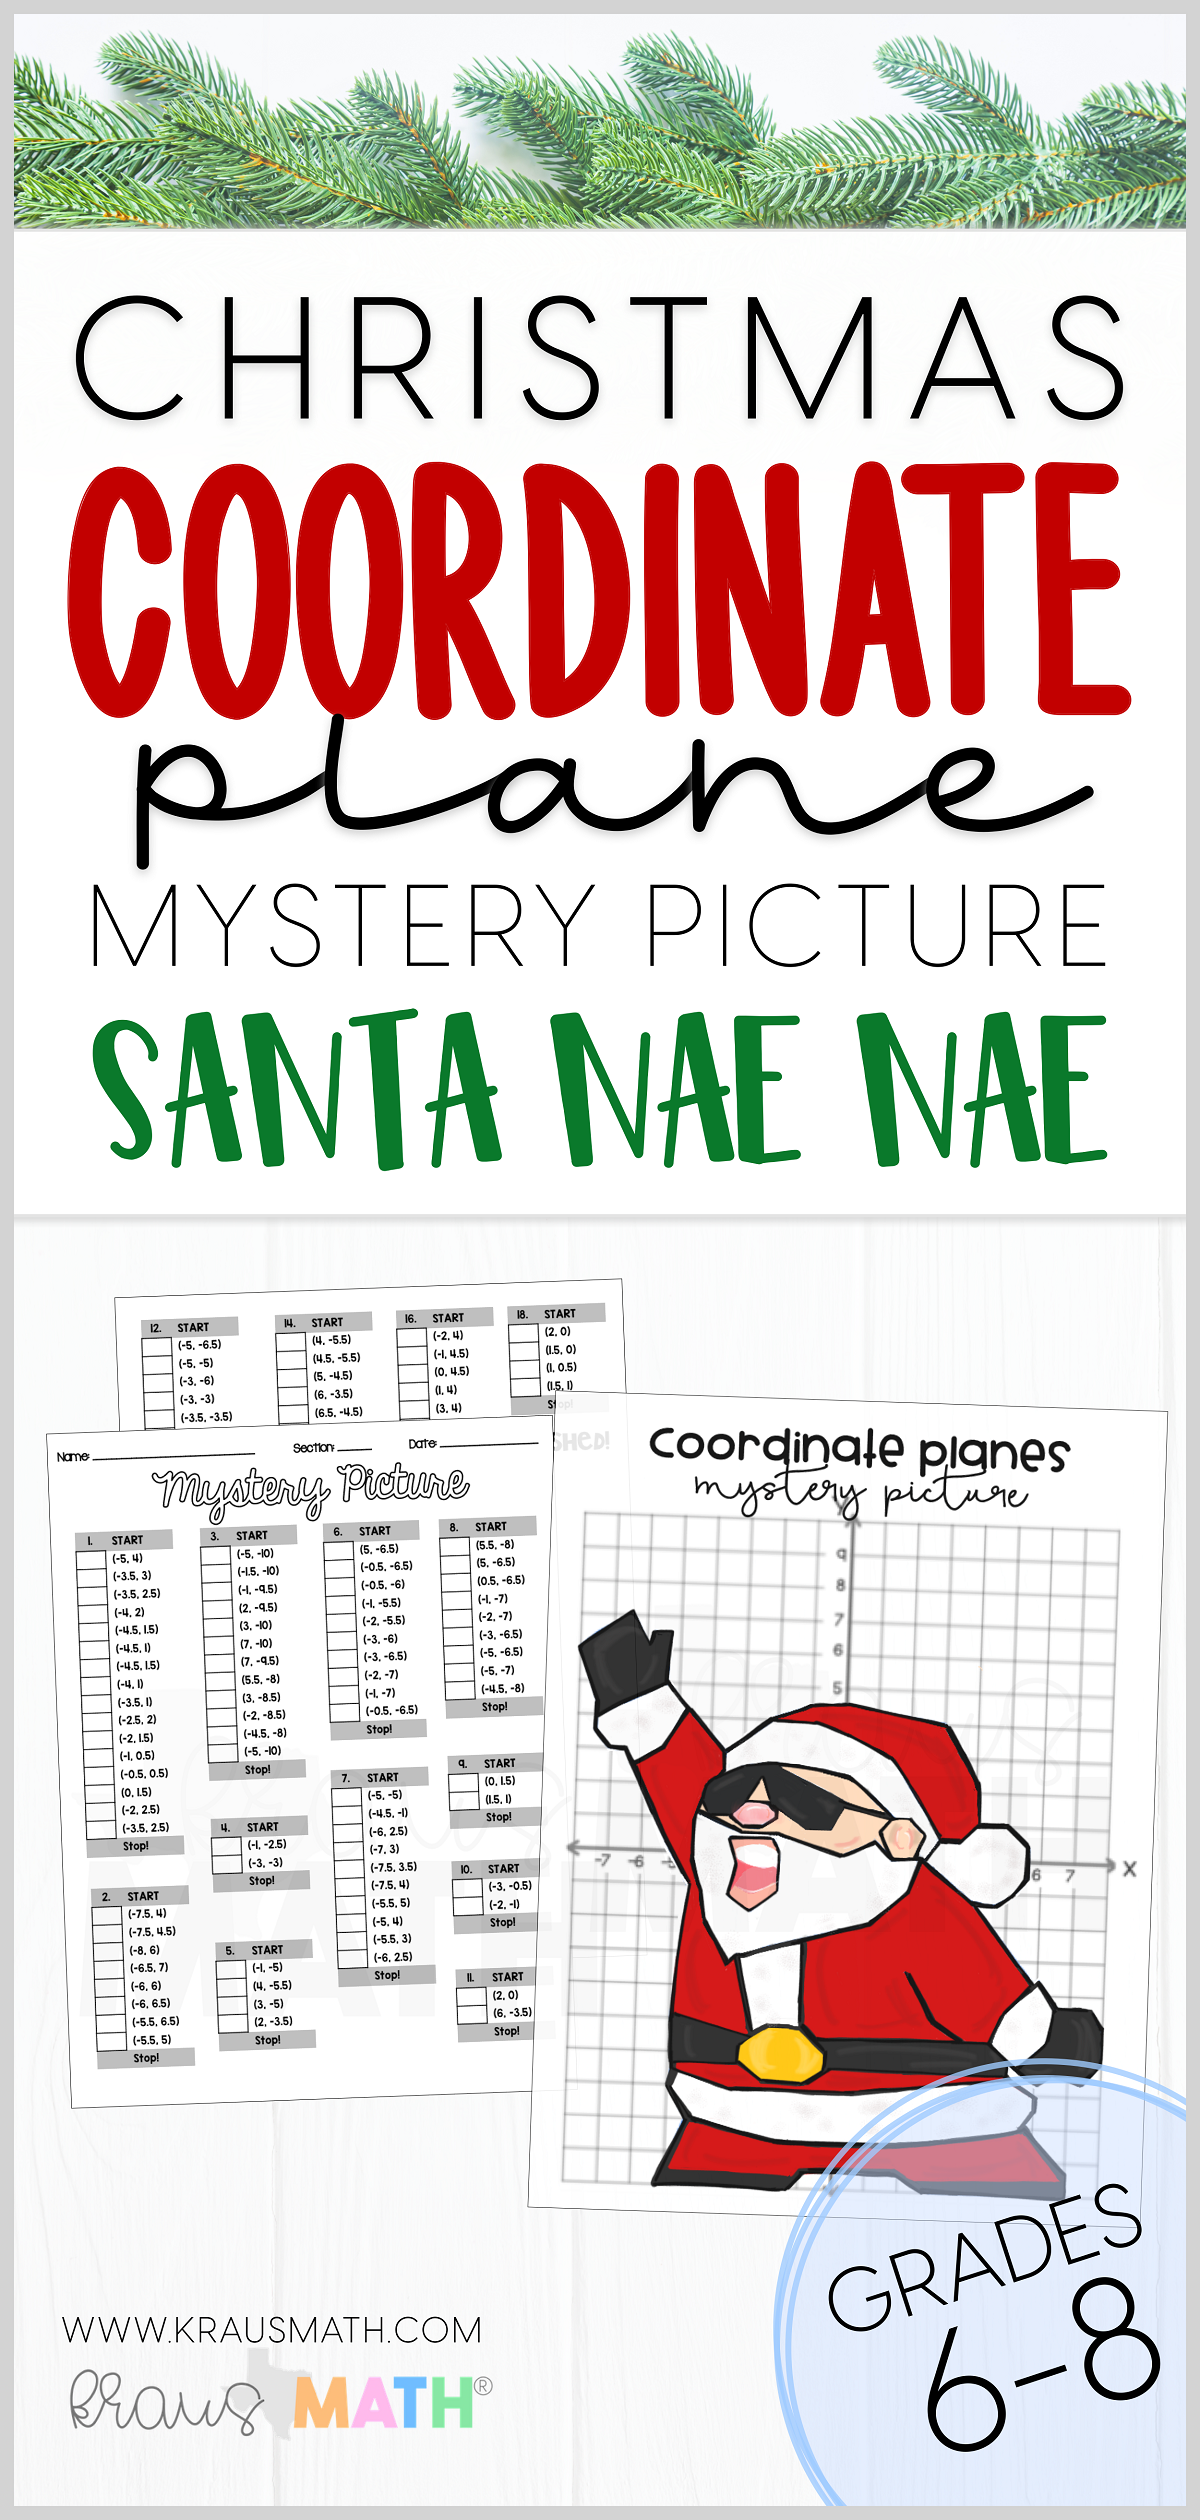 Santa Watch Me Nae Nae Coordinate Plane Activity 4